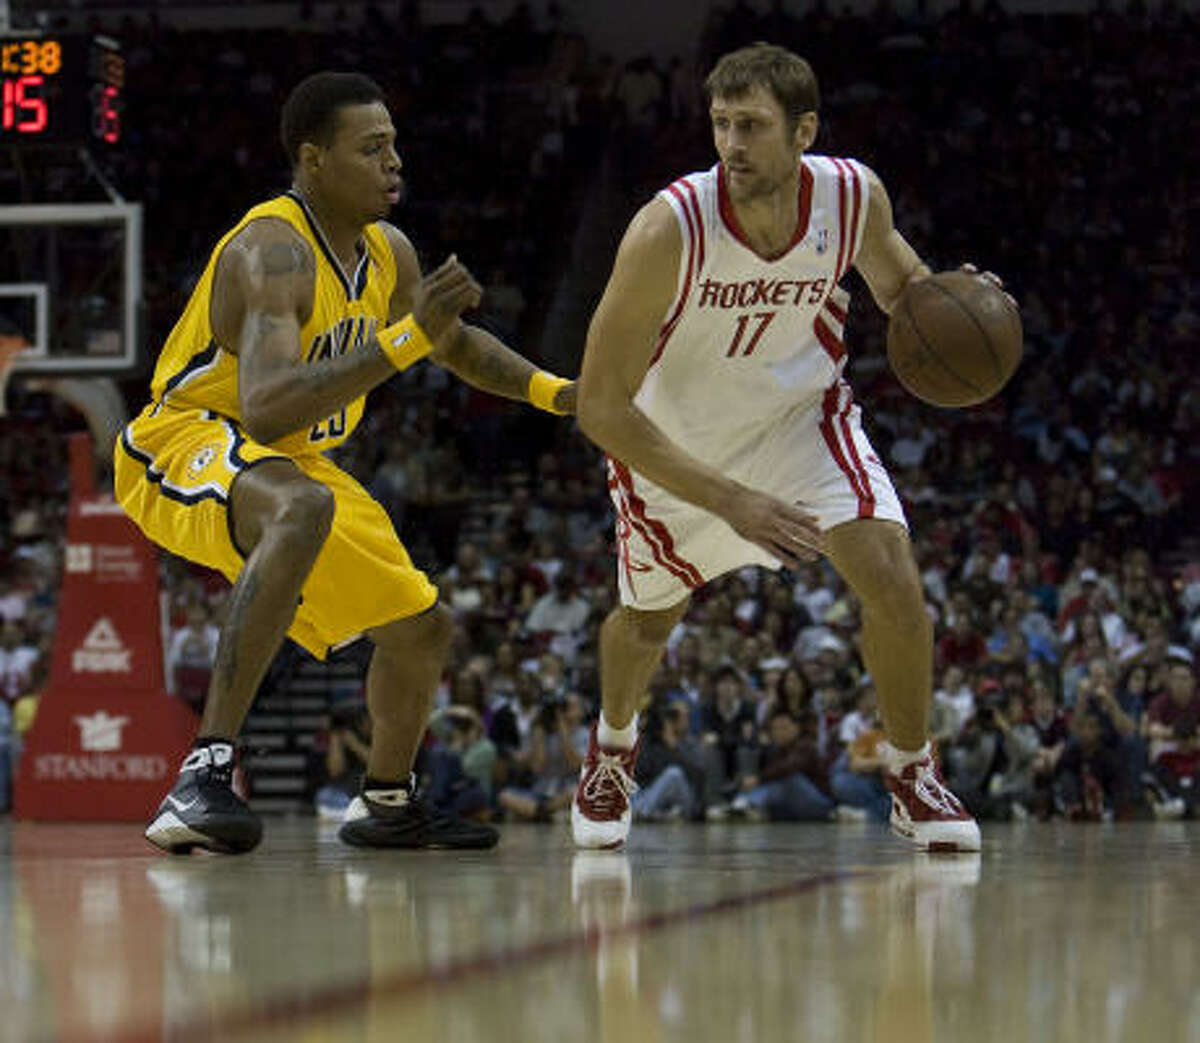 Brent Barry averaged 3.7 points and 1.4 assists in 56 games with the Rockets last season, his one season with the team.